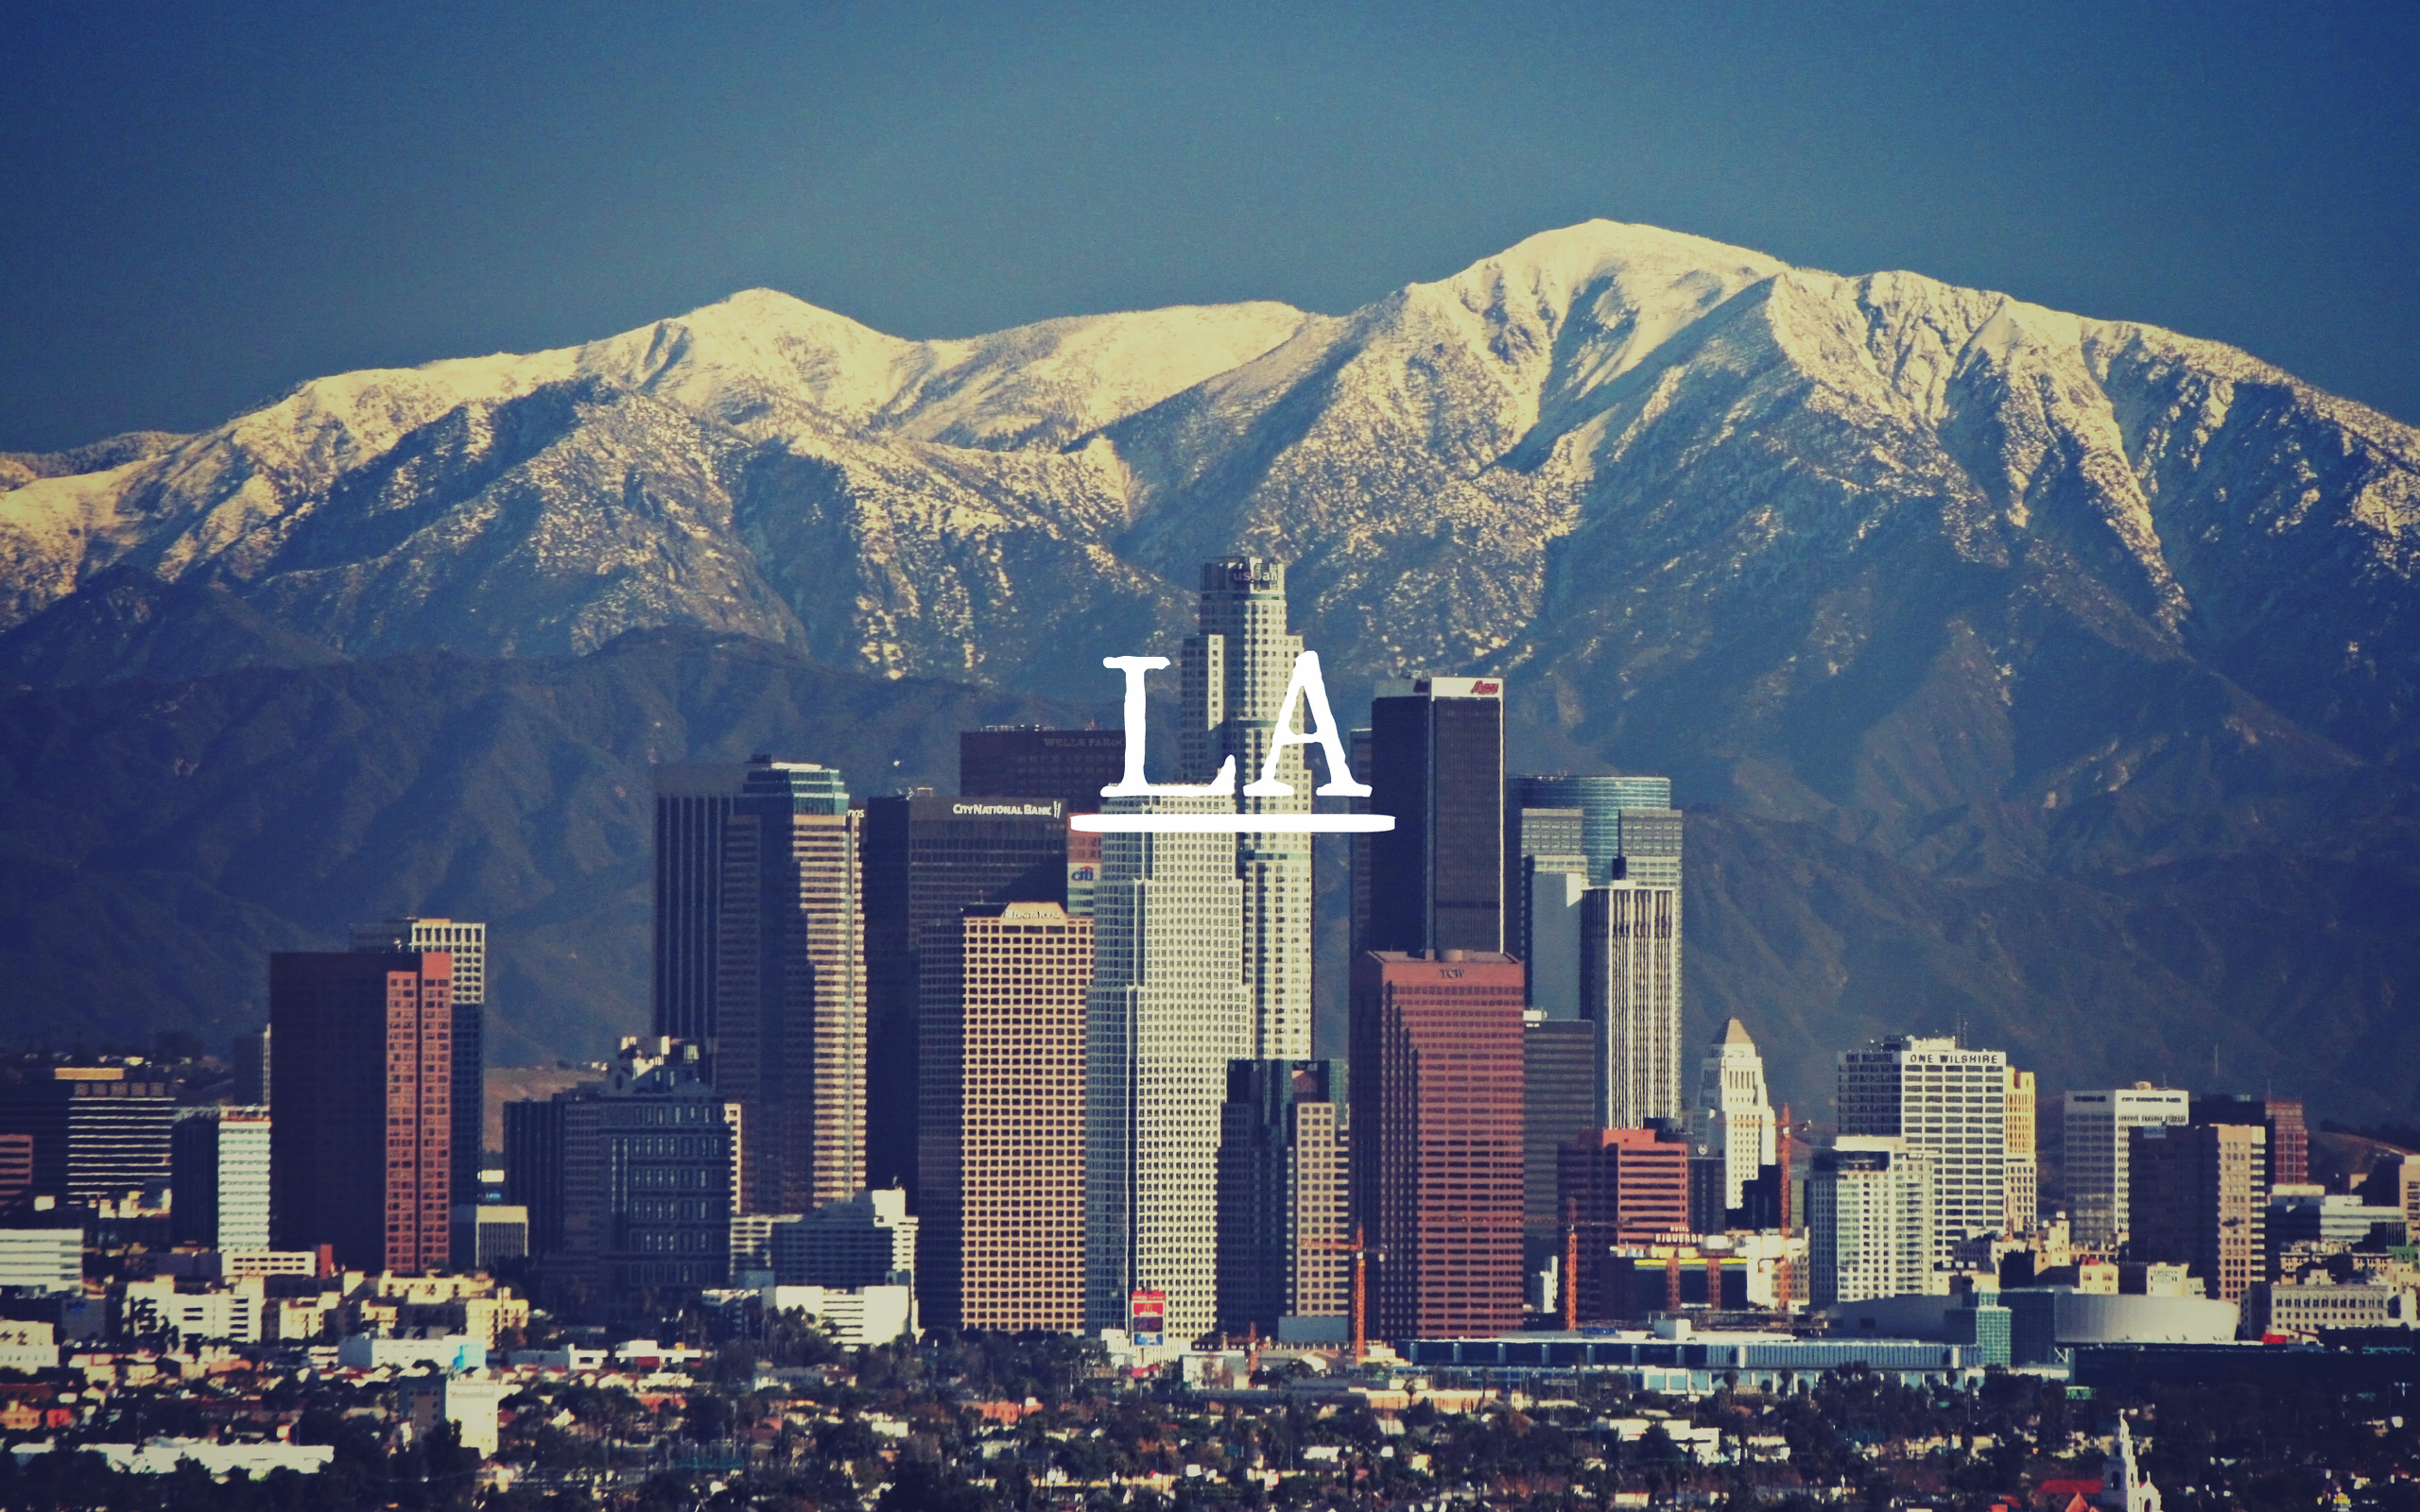 los angeles computer wallpapers desktop backgrounds